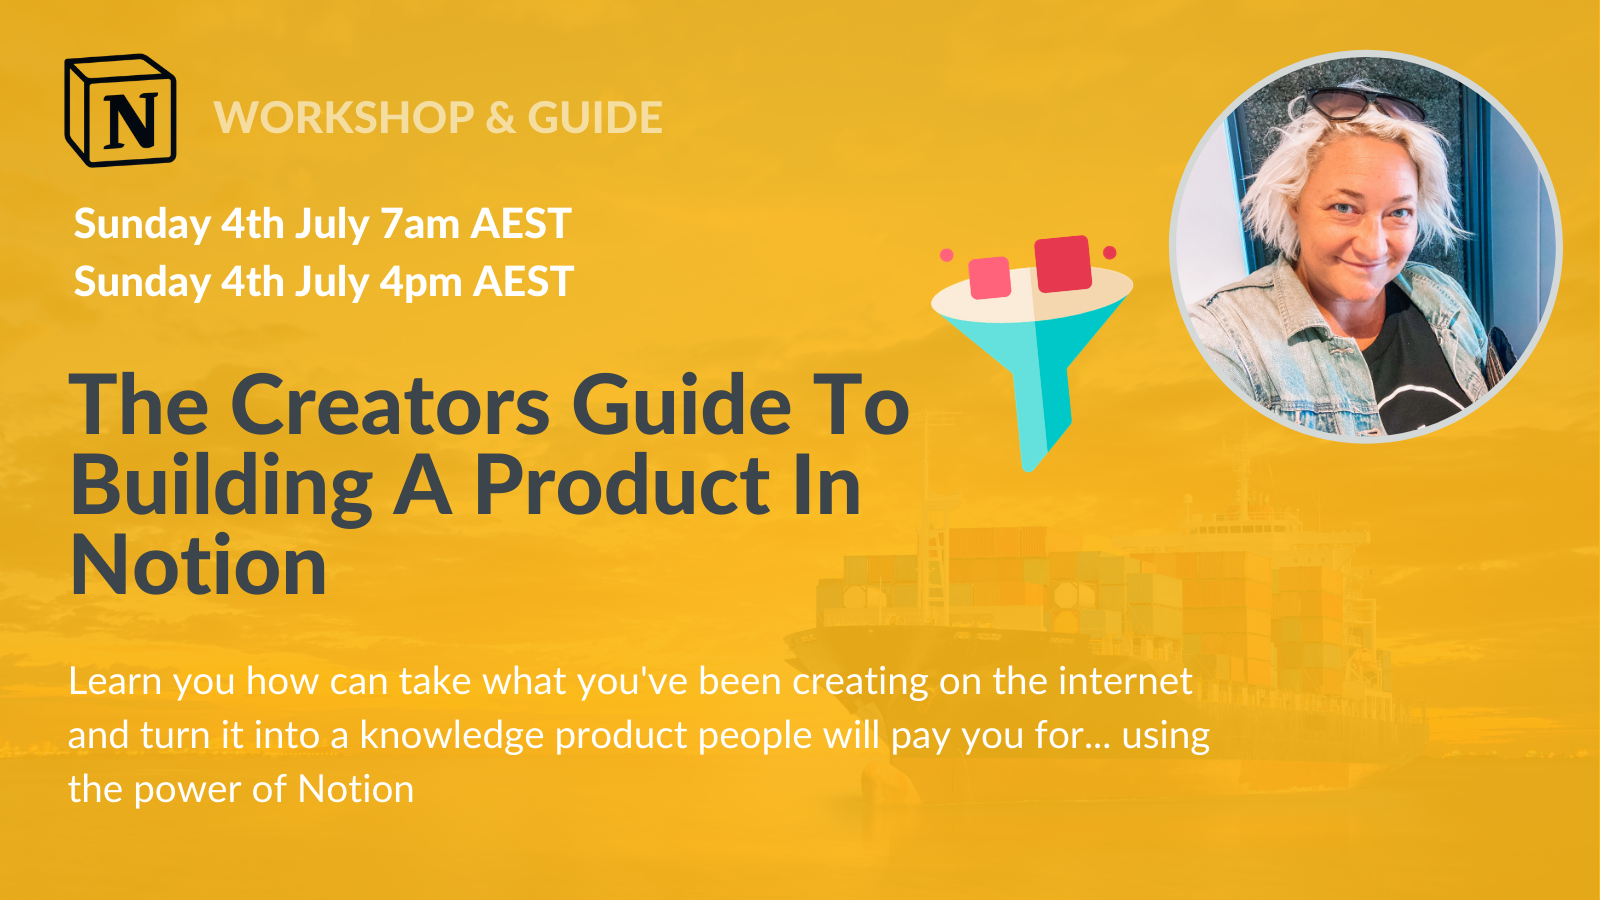 [WORKSHOP] The Creators Guide To Building A Product In Notion